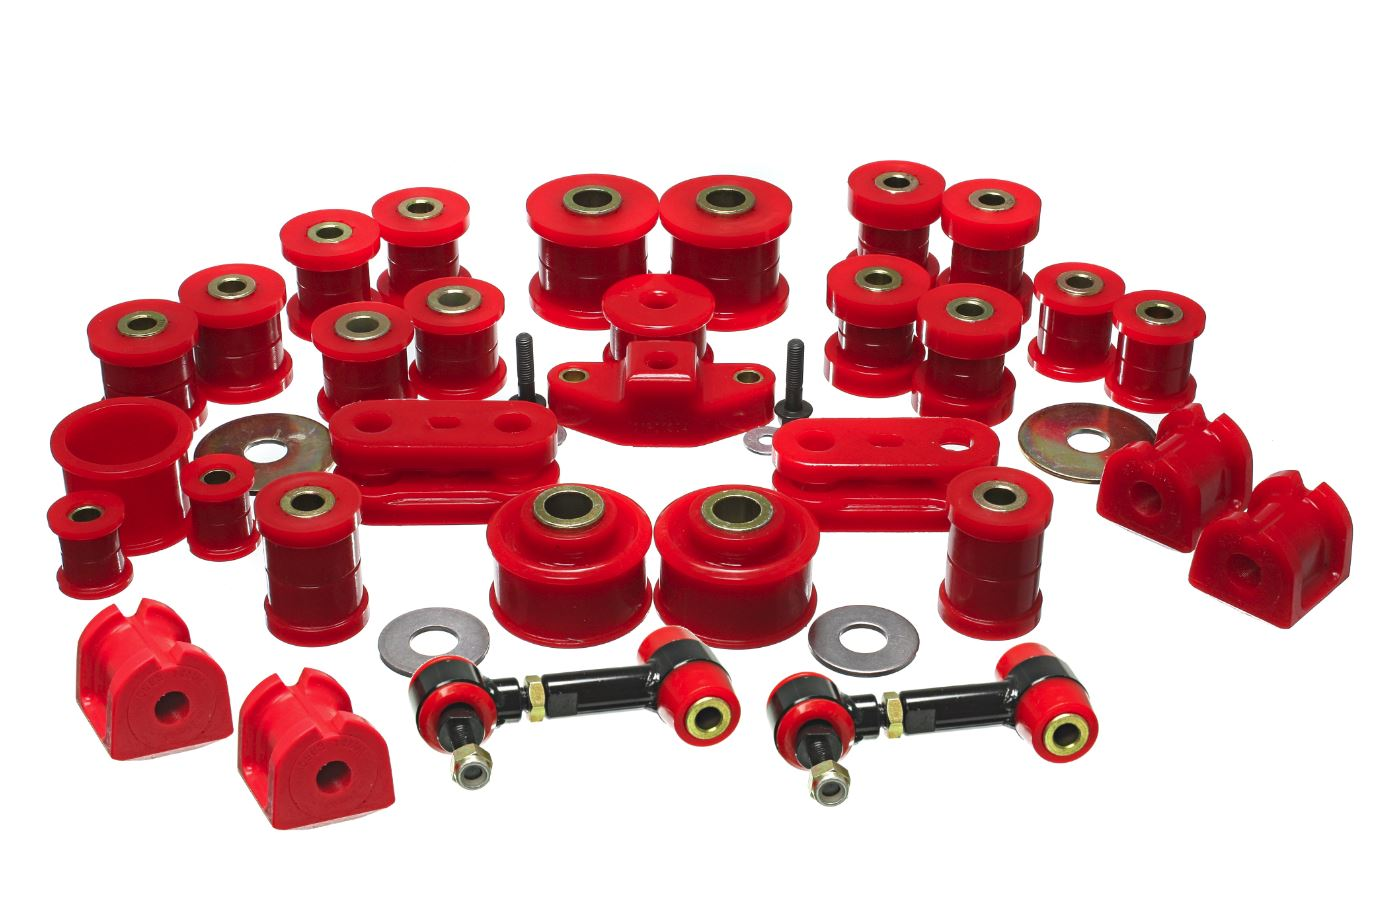 red hyper-flex bushing kit